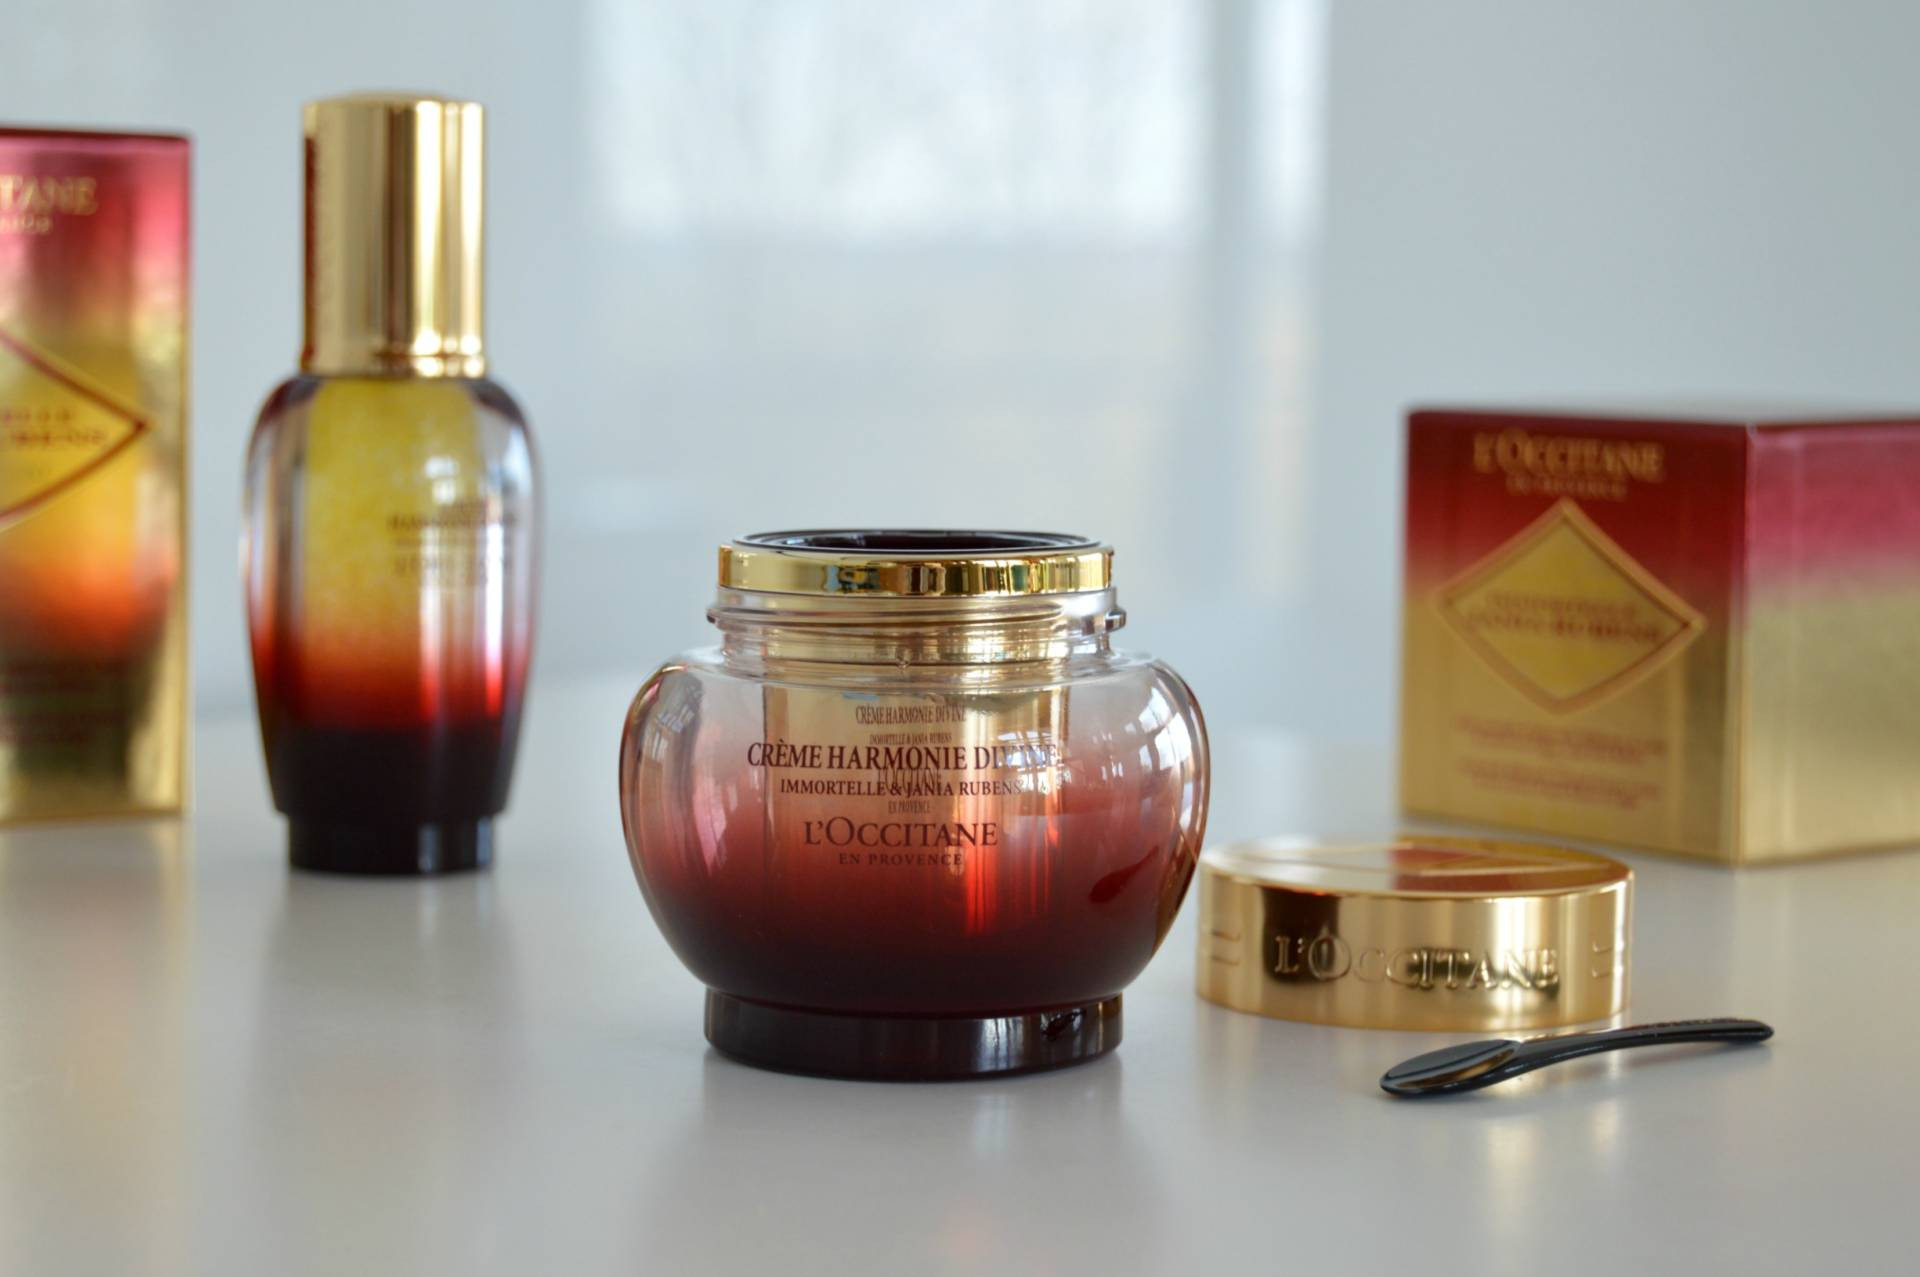 loccitane-harmonie-divine-cream-dry-oil-finish-review-inhautepursuit